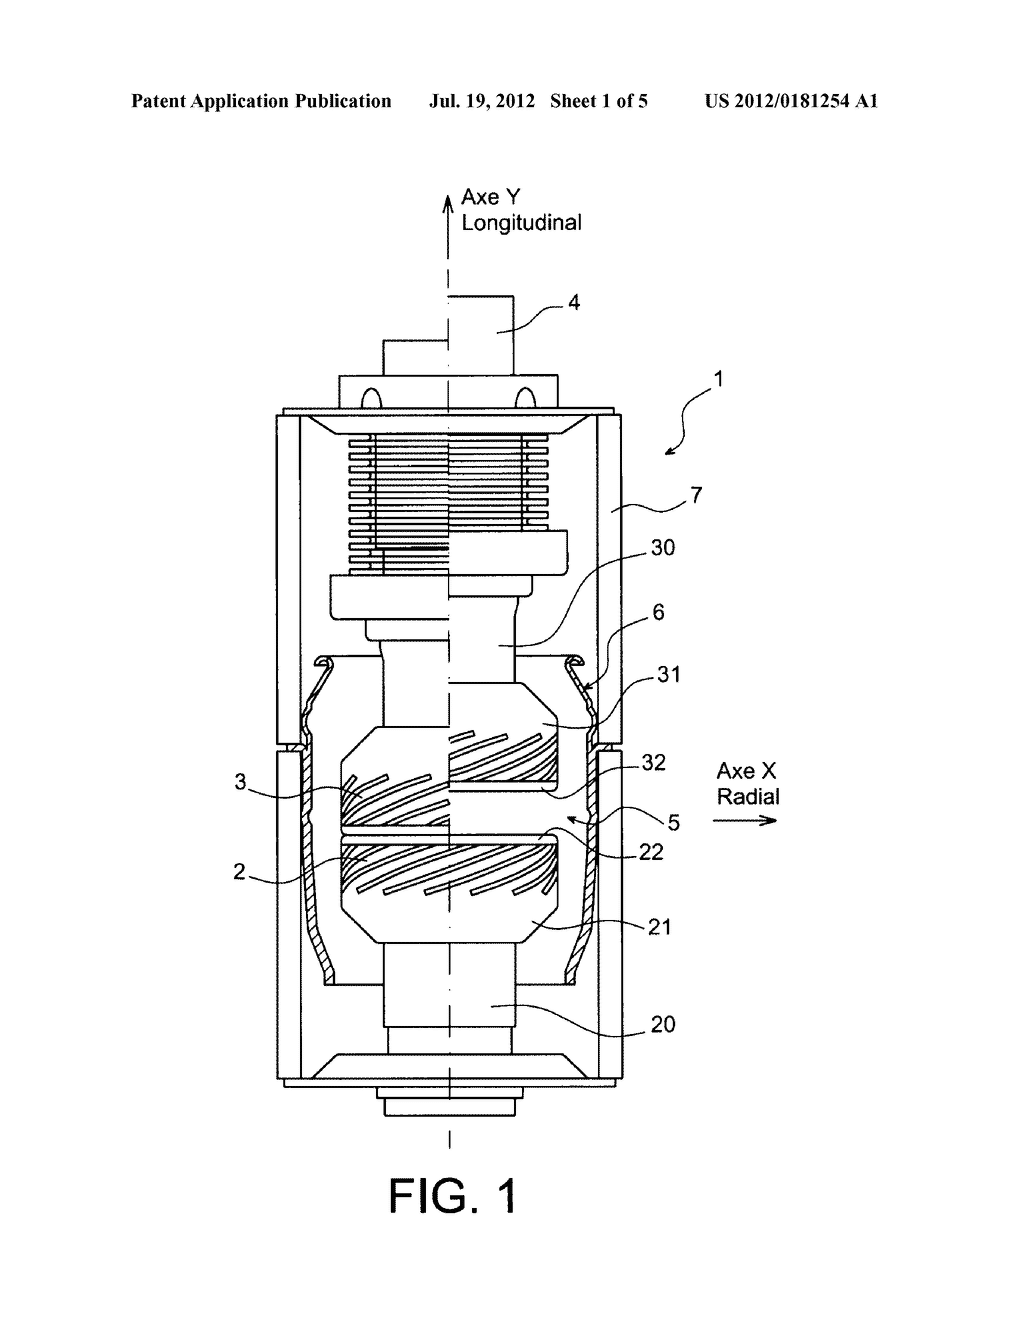 Winding For A Contact Of Medium Voltage Vacuum Circuit Breaker Generator With Improved Arc Extinction And An Associated